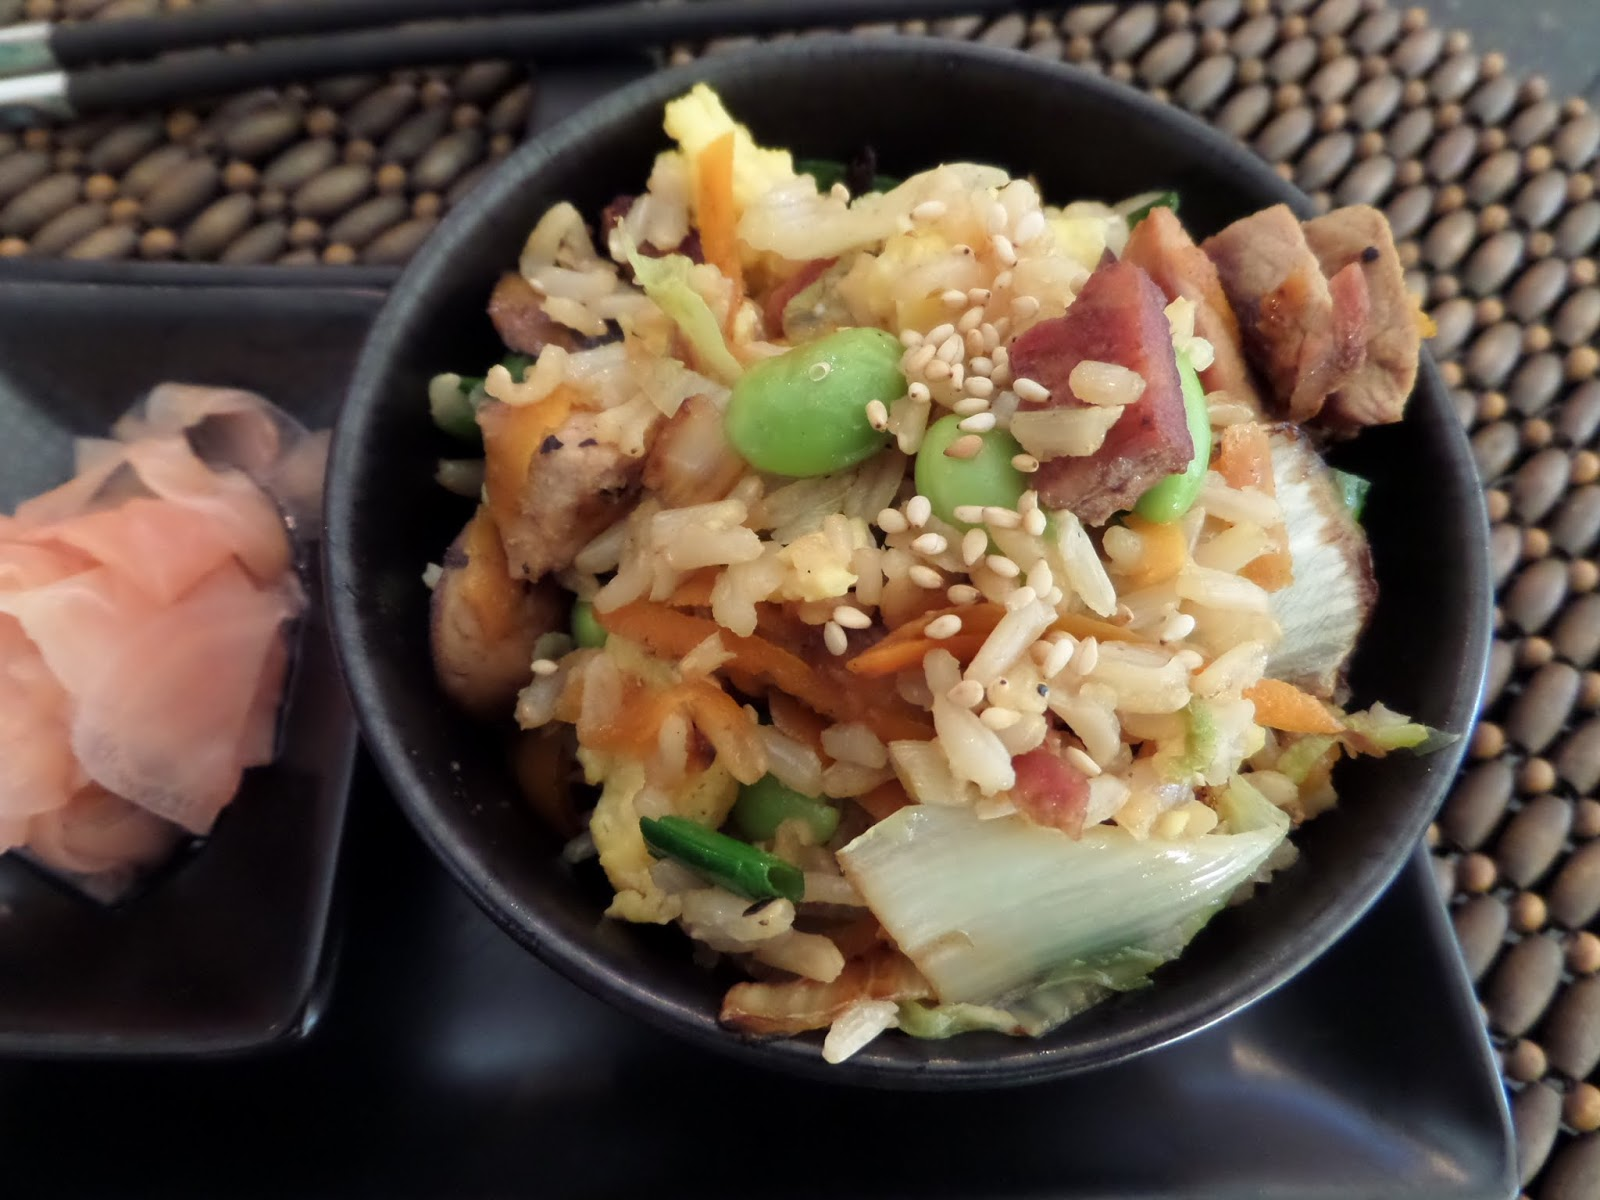 Foodie: in Minnesota: Edamame and Pork Fried Brown Rice